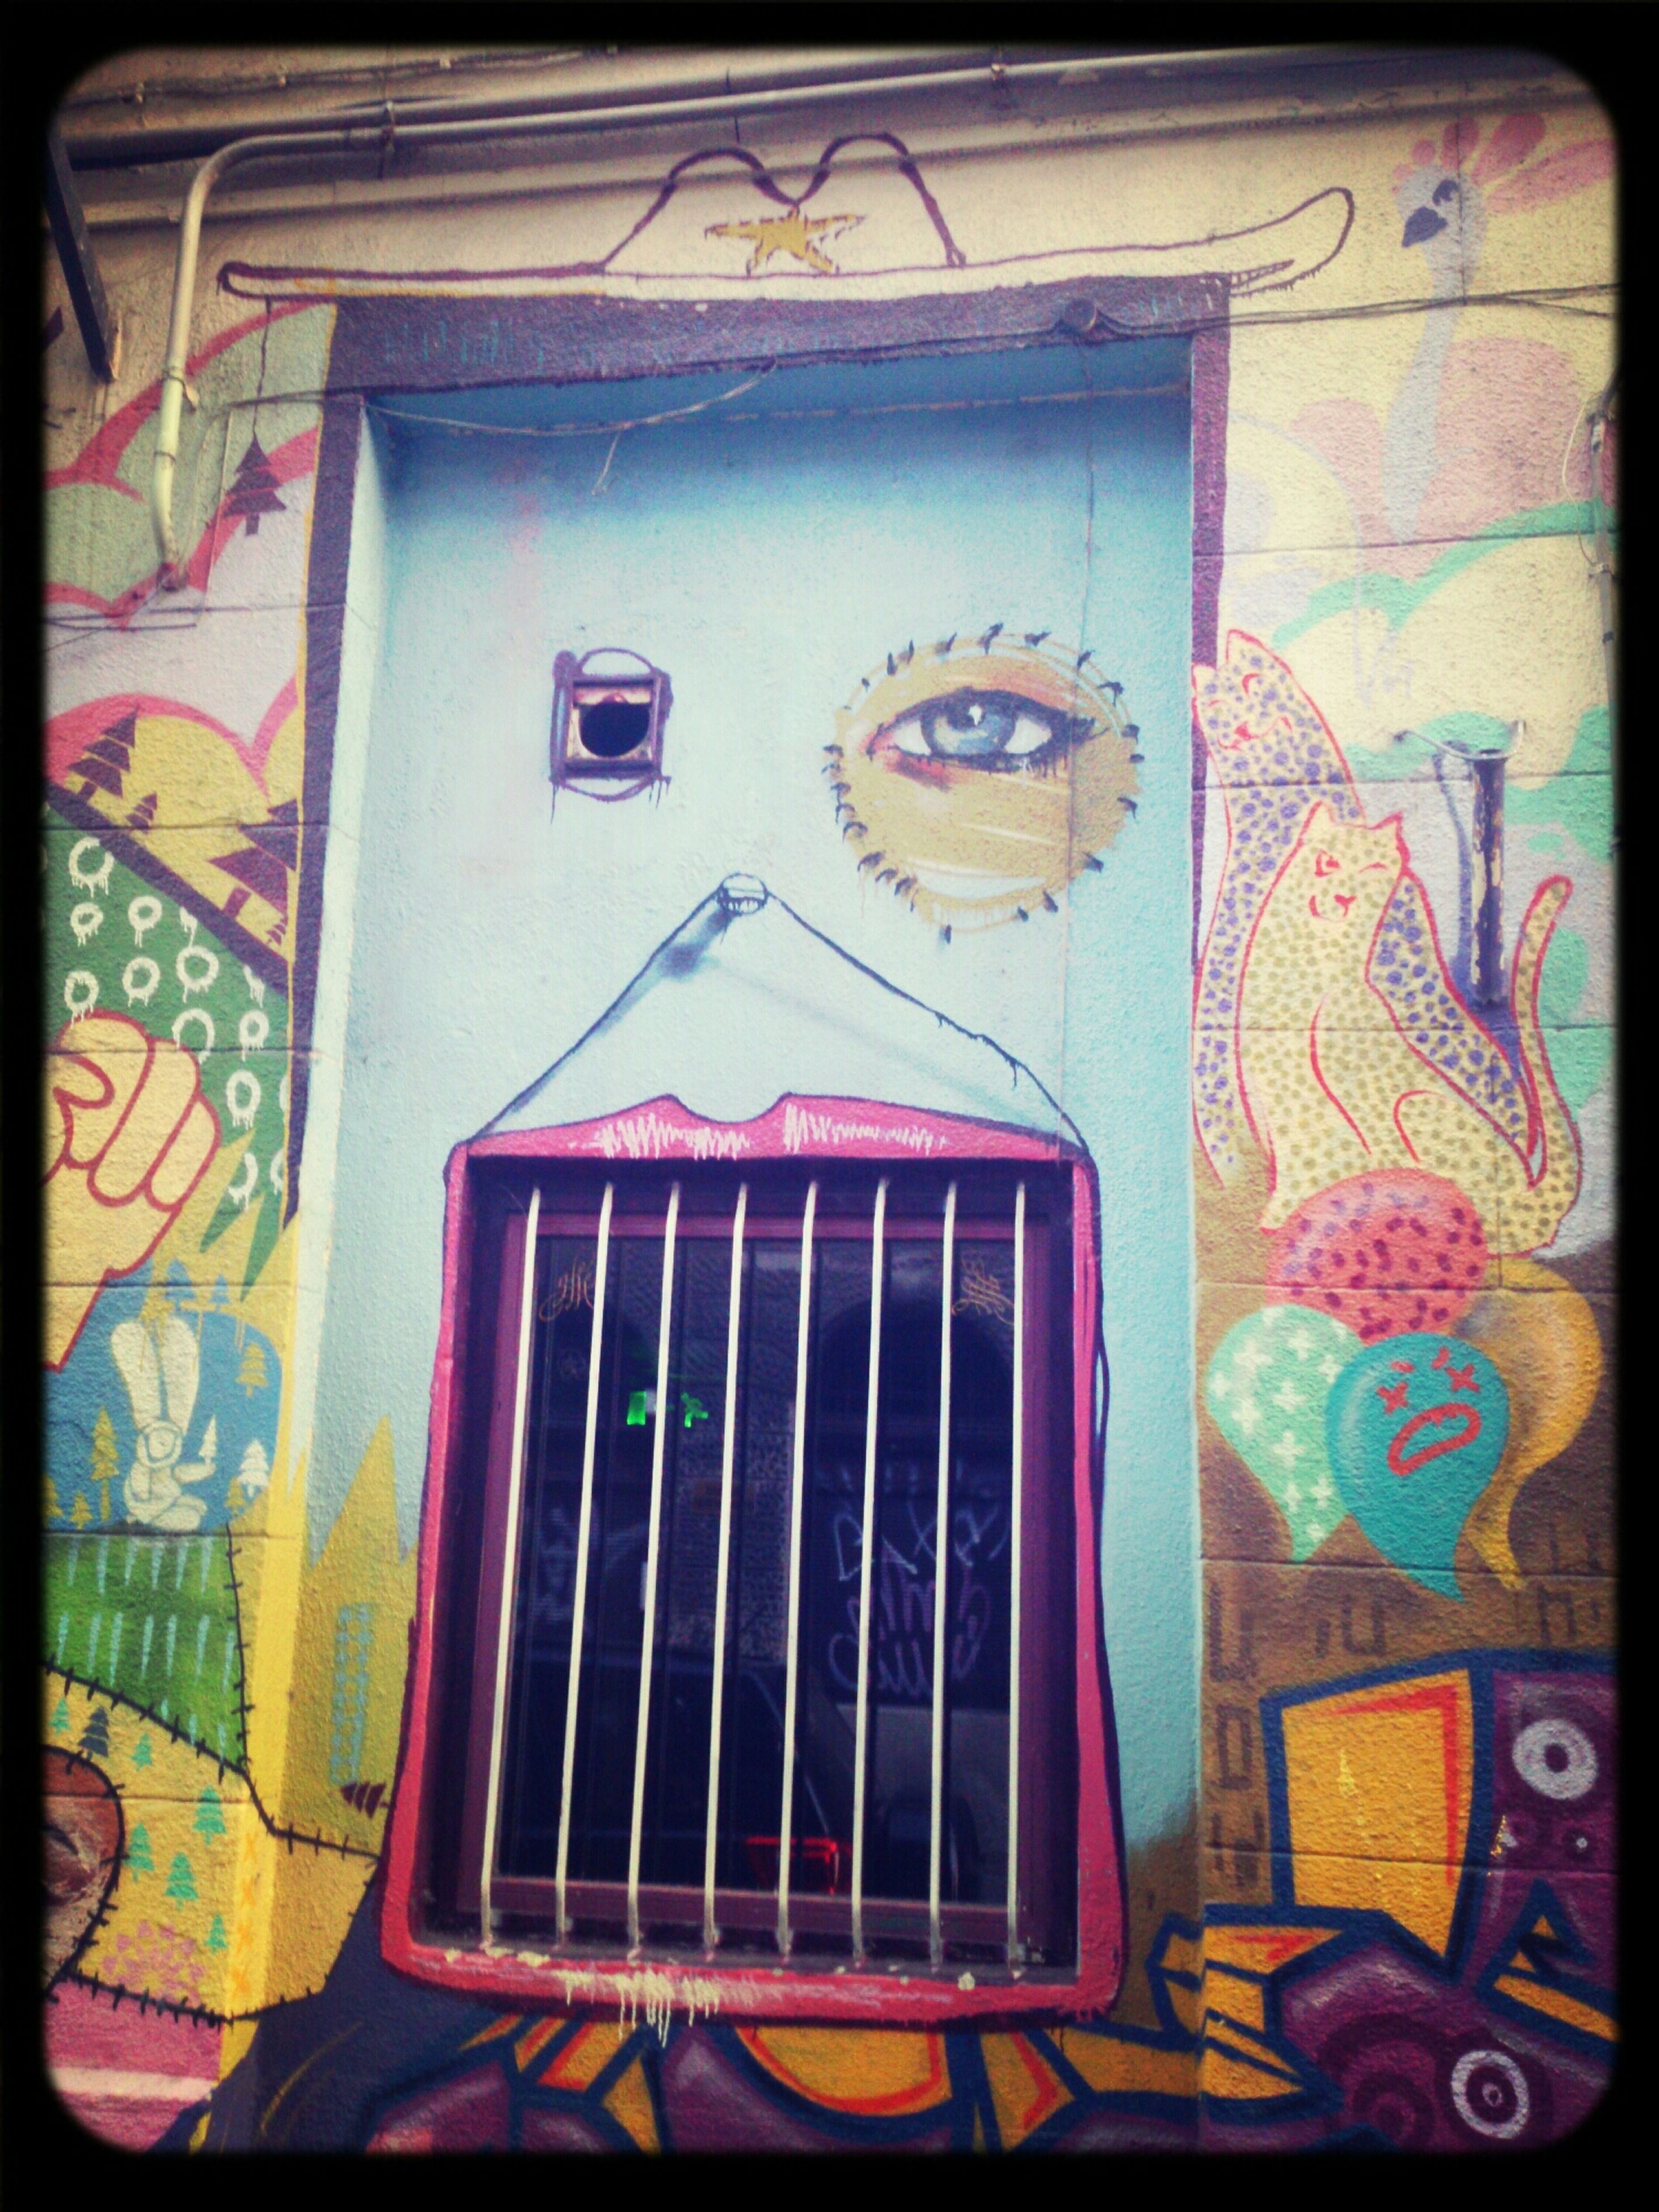 graffiti, art, art and craft, creativity, architecture, built structure, wall - building feature, building exterior, transfer print, multi colored, street art, auto post production filter, wall, door, mural, human representation, window, text, closed, design